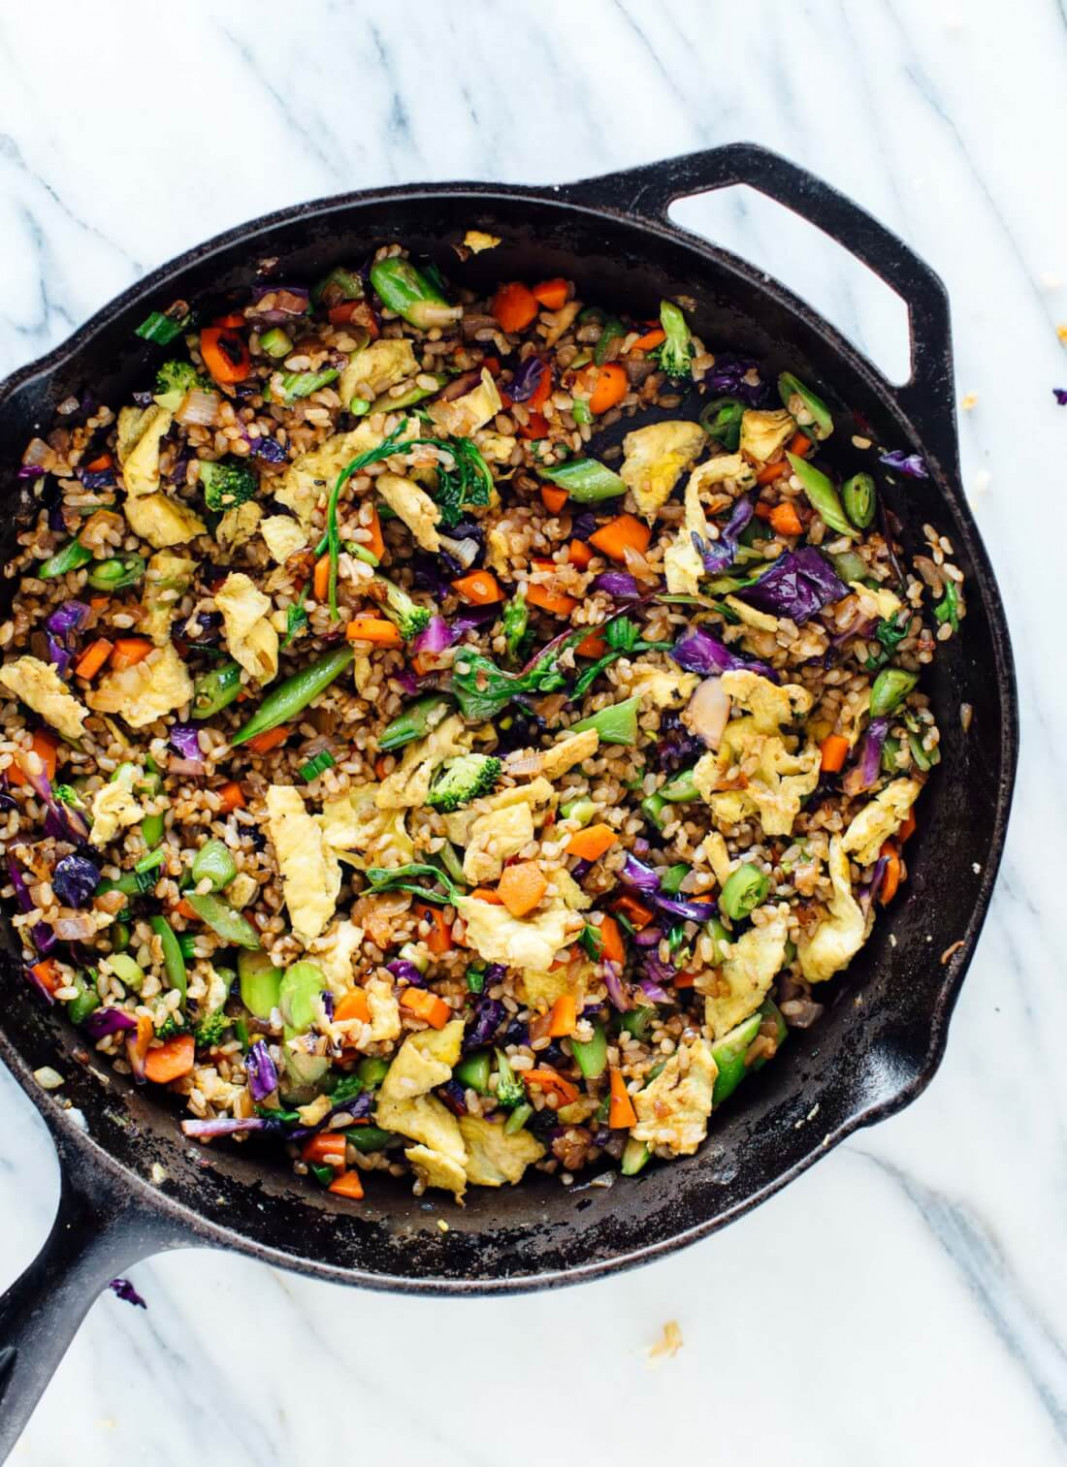 11 Best Vegetarian Recipes - Cookie and Kate